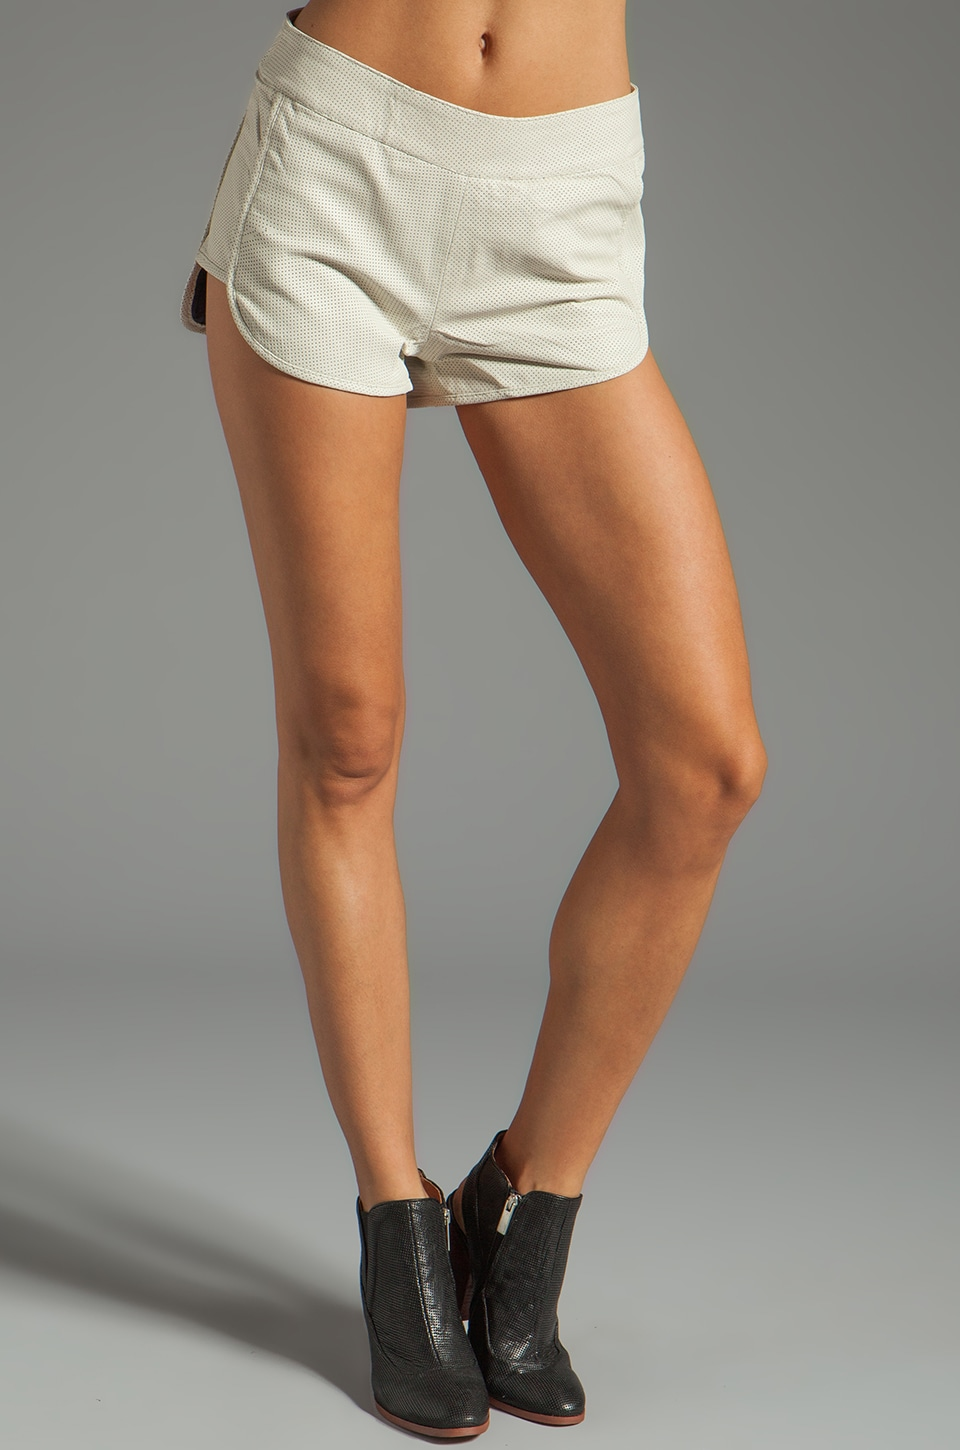 One Teaspoon Mercury Leather Short in Cream